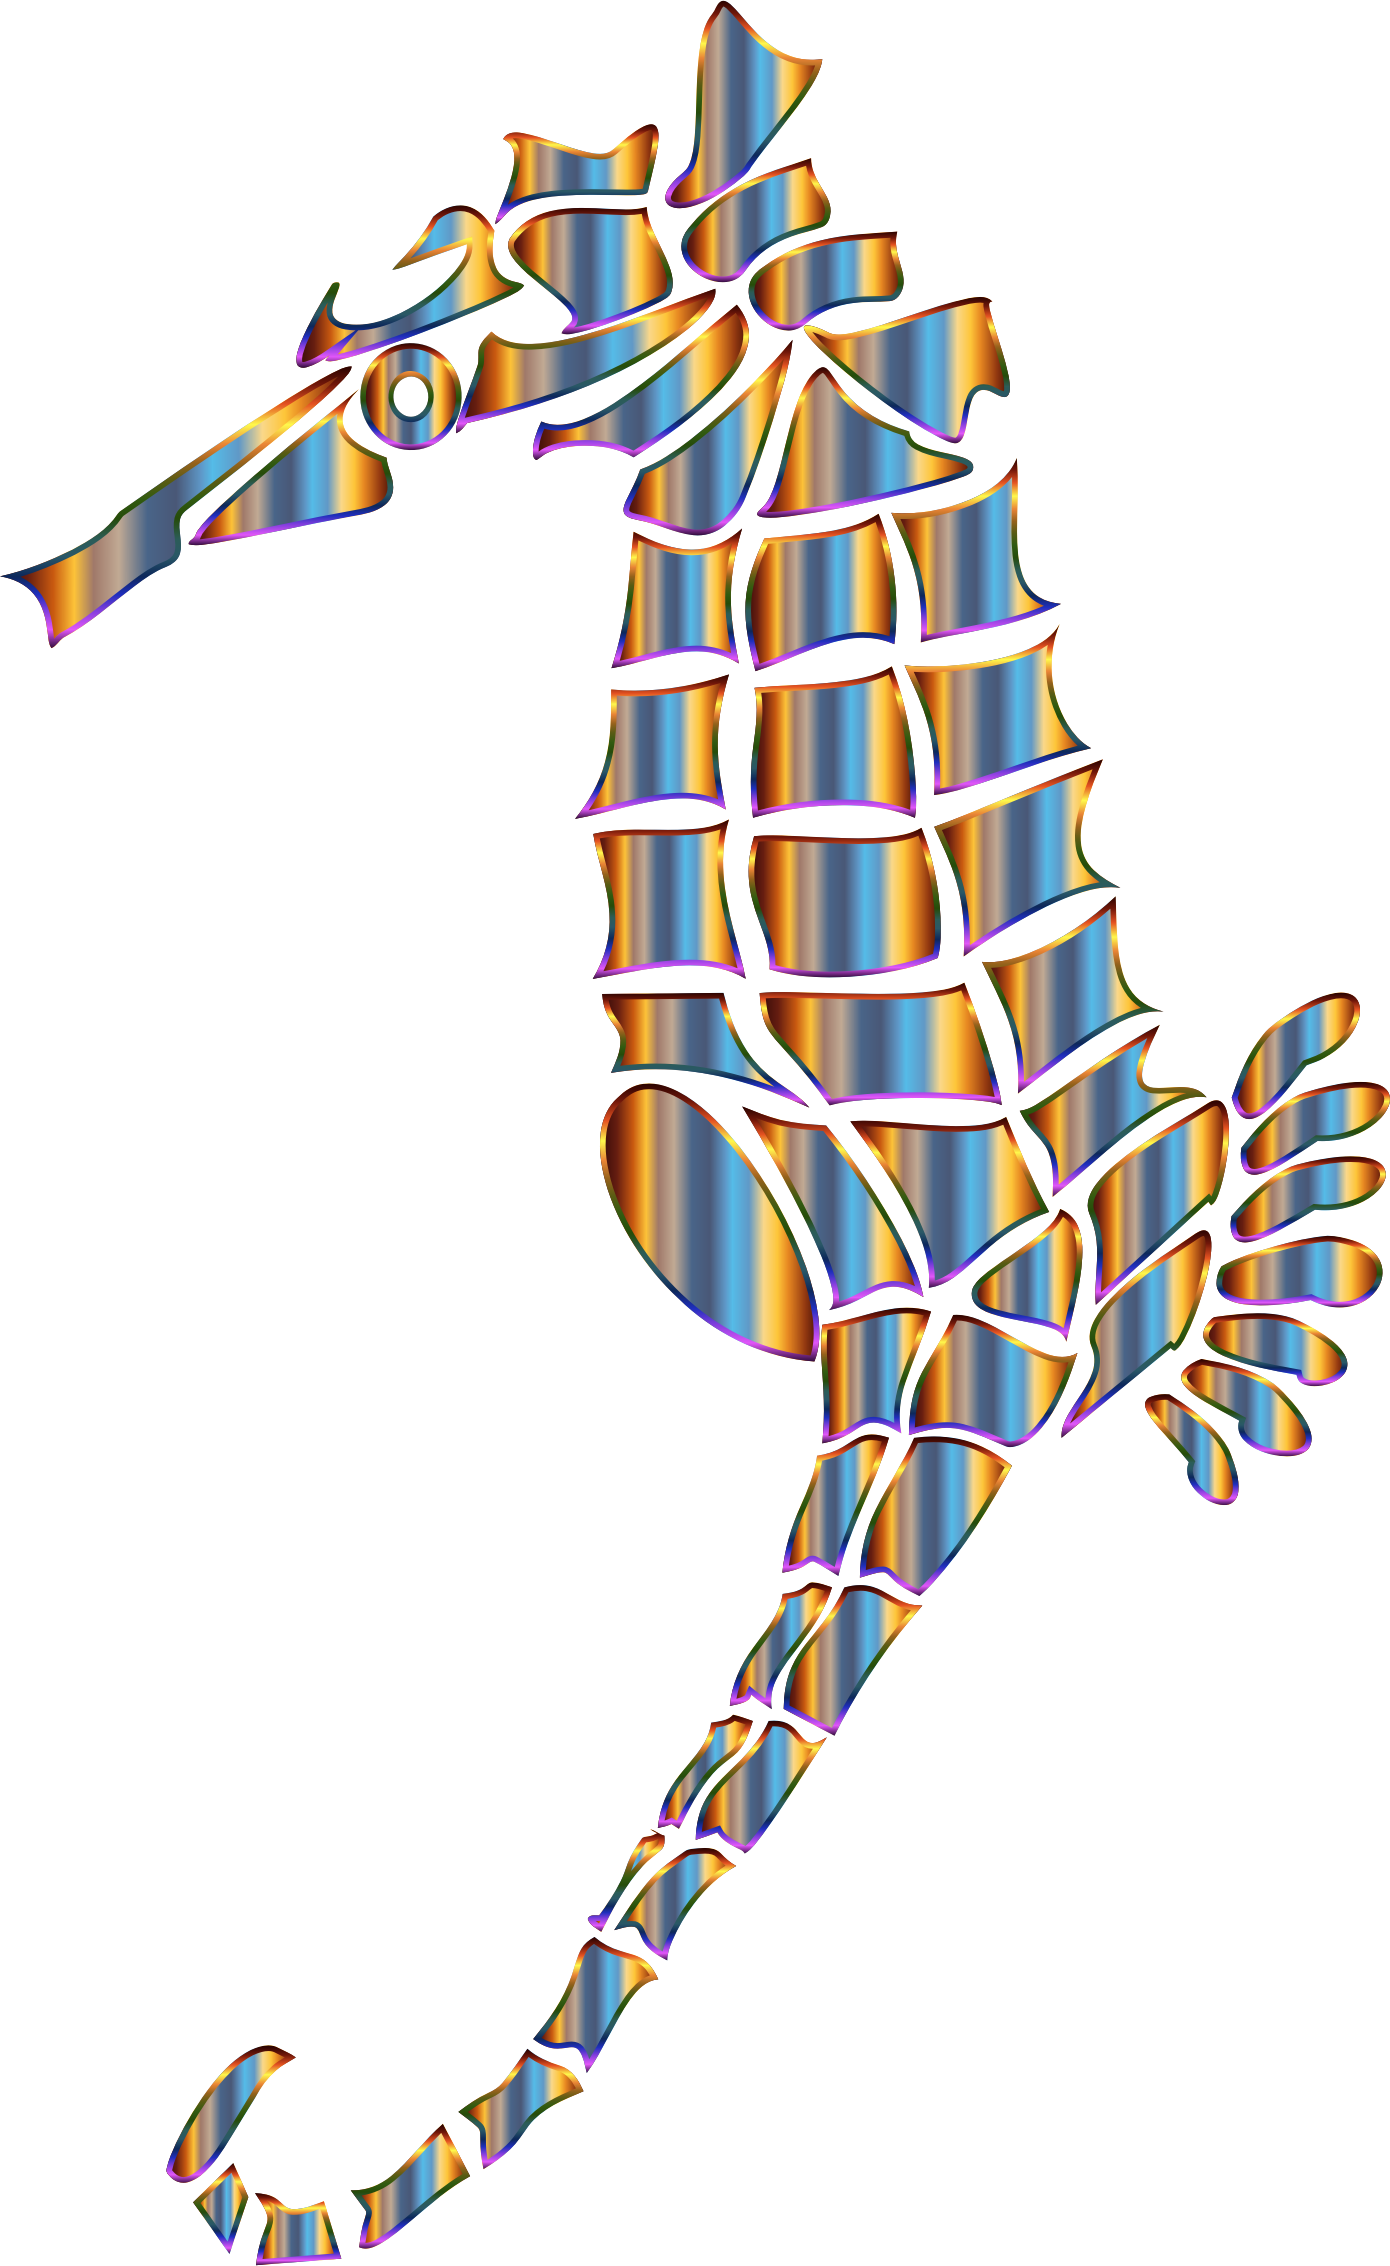 Chromatic Stylized Seahorse Silhouette No Background by GDJ